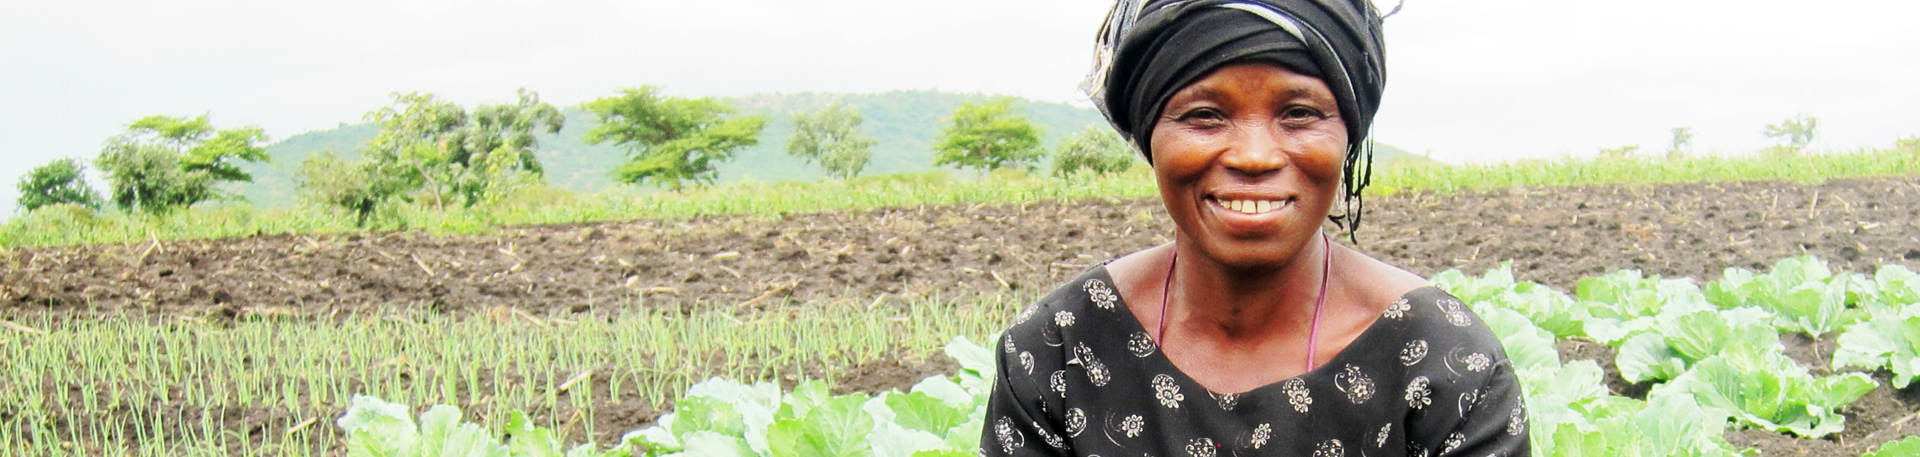 Transformations: Stories of Partnership, Resilience and Change in Tanzania Banner Image